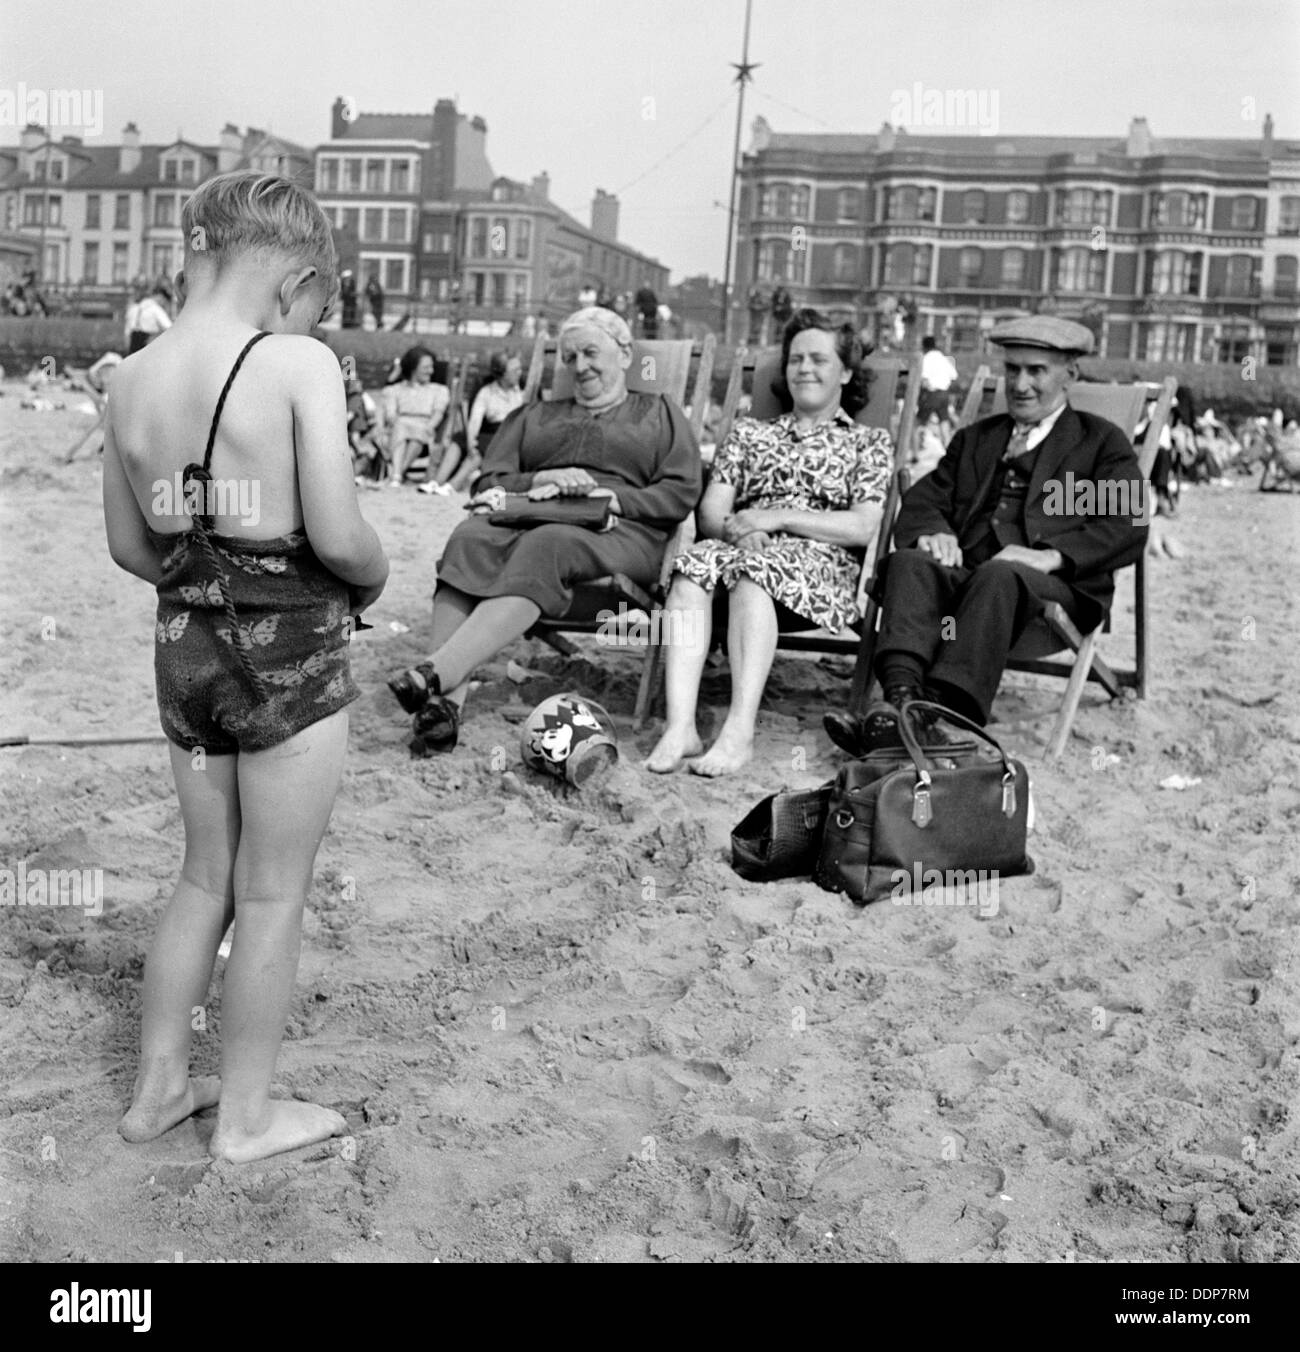 A child photographs his mother and grandparents on the beach, Blackpool, c1946-c1955. Artist: John Gay - Stock Image